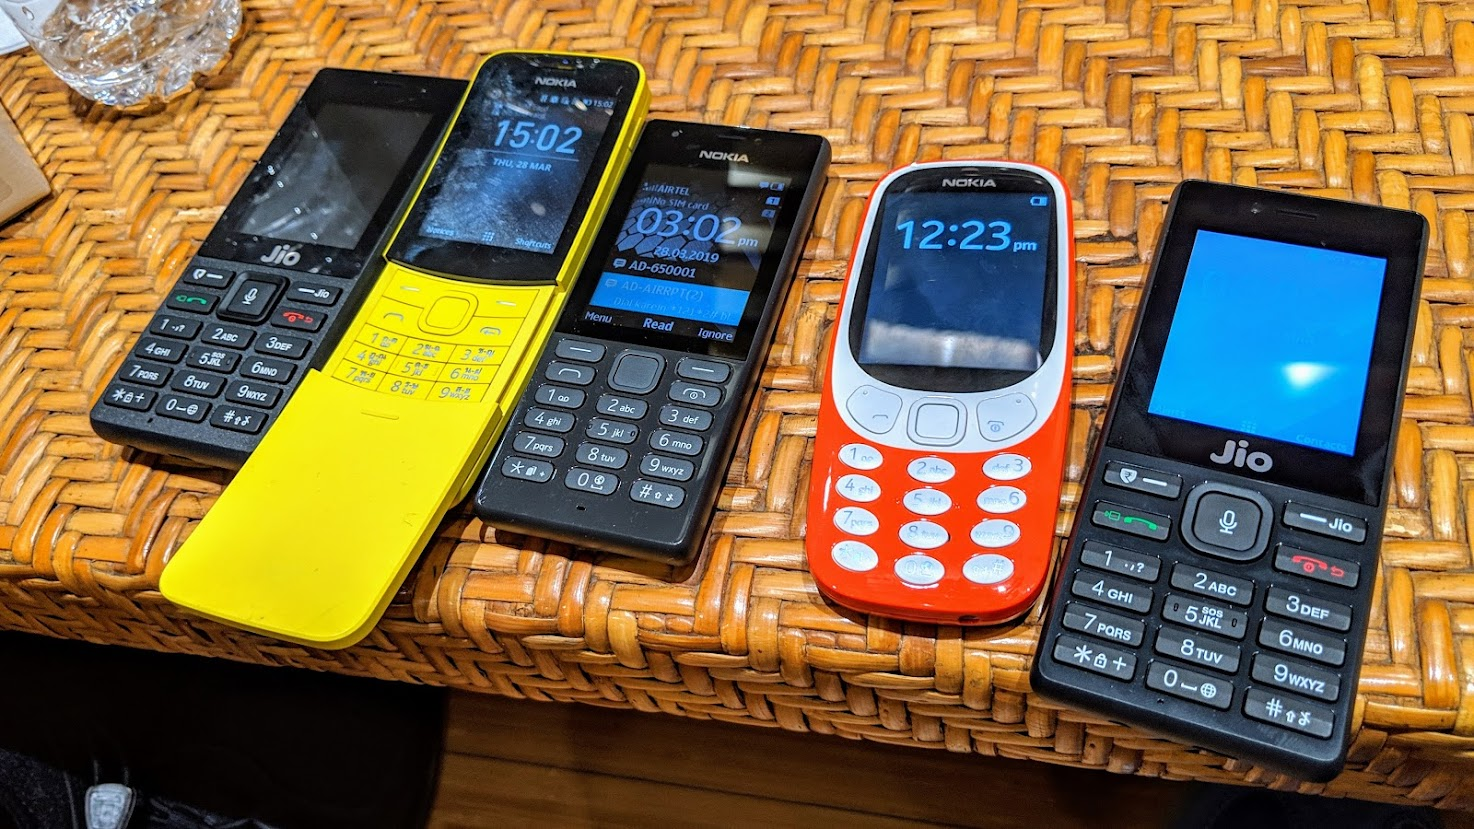 Many types of phones on a table.